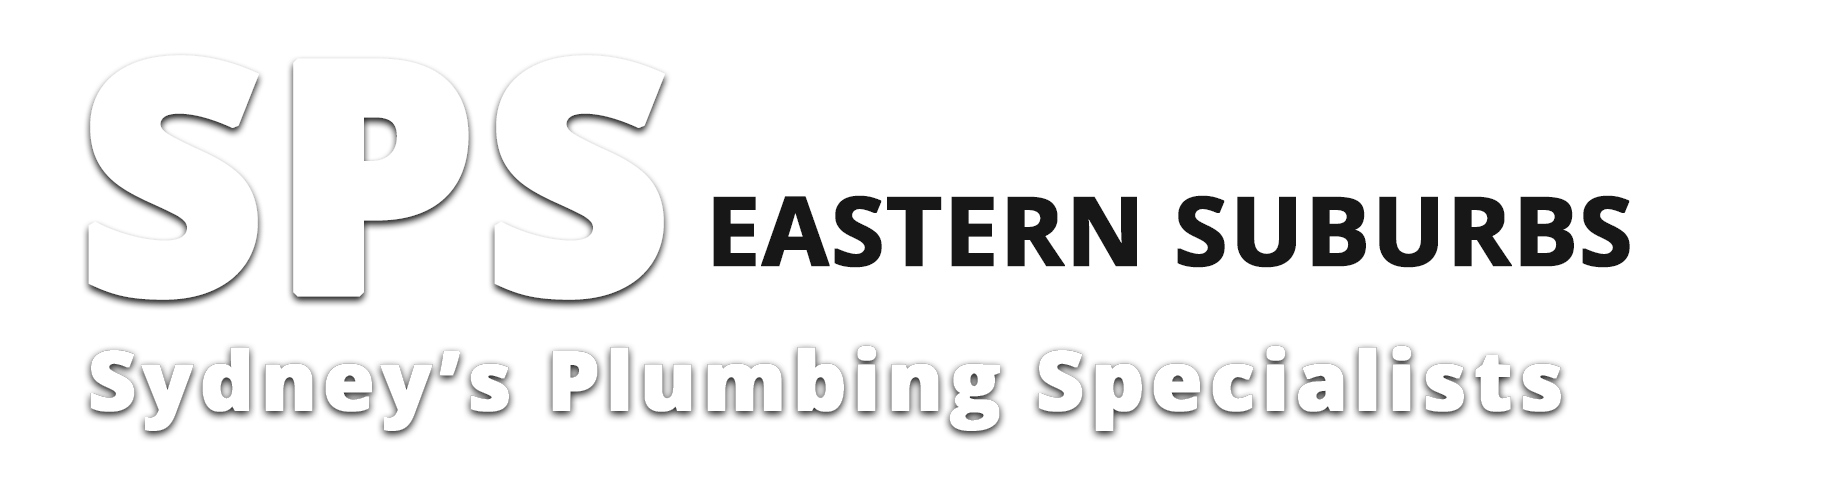 SPS Plumber Eastern Suburb, Sydney's plumbing specialist